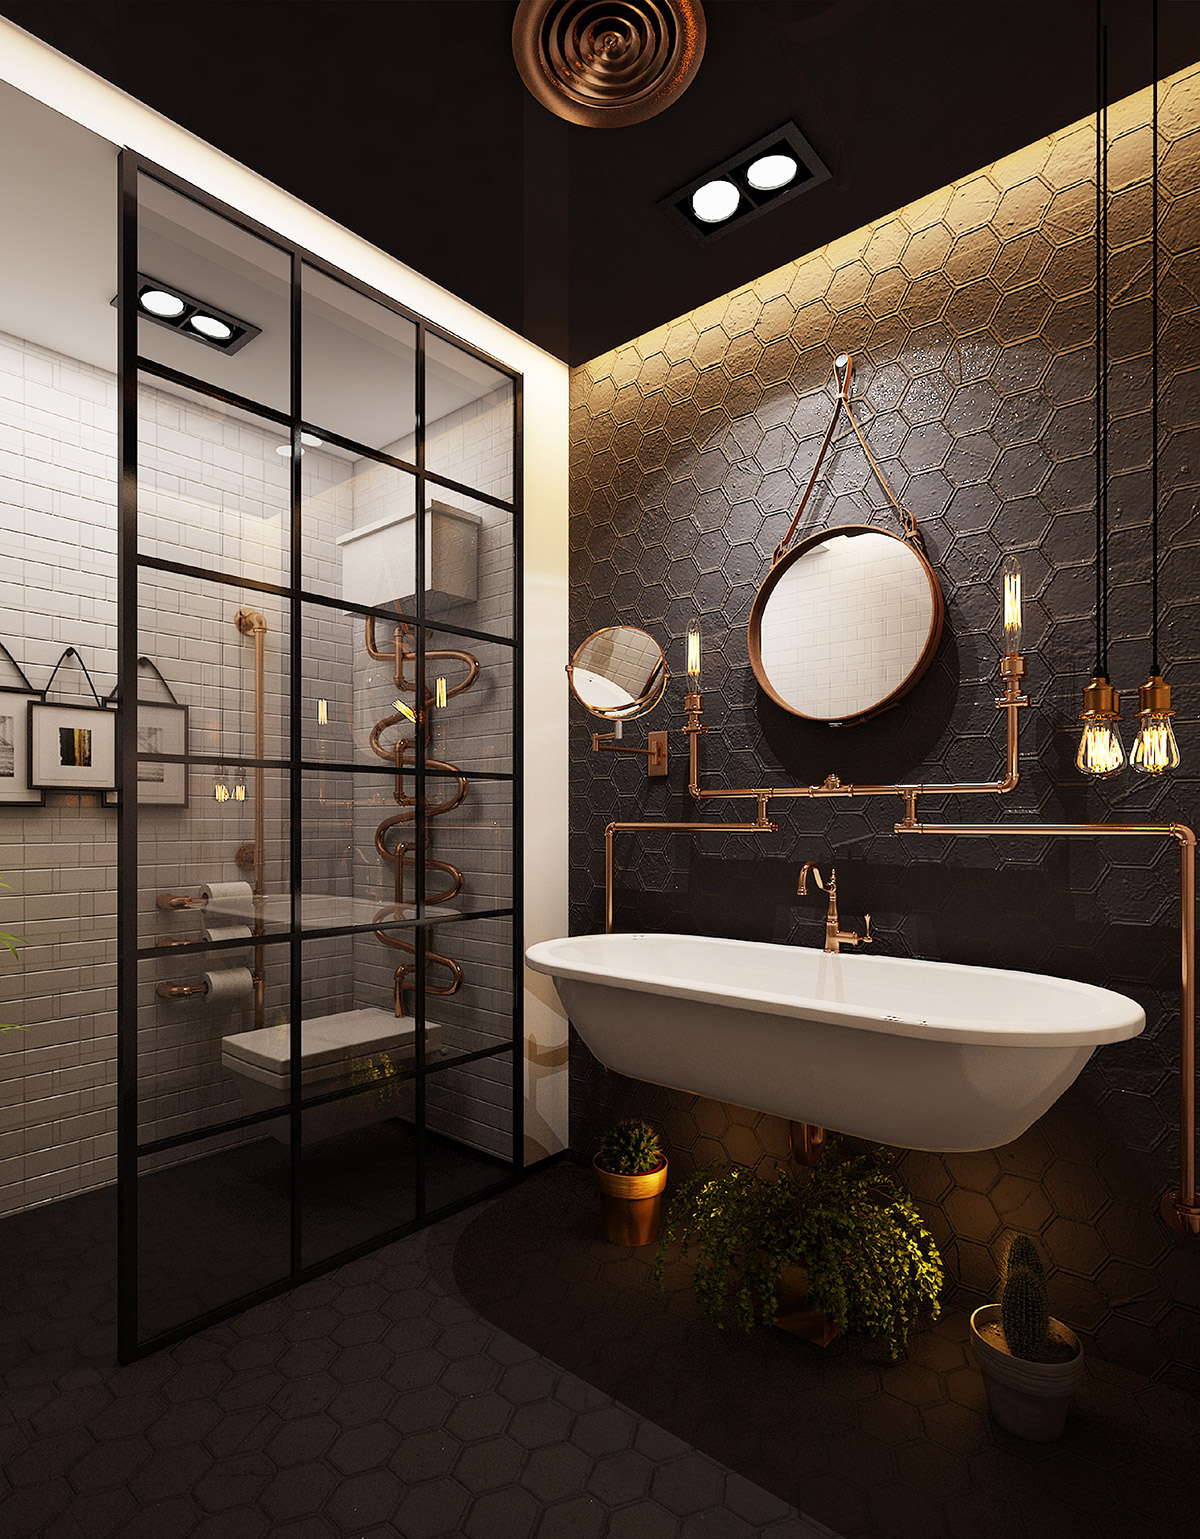 3+ industrial bathroom ideas for you - perfect for renovation